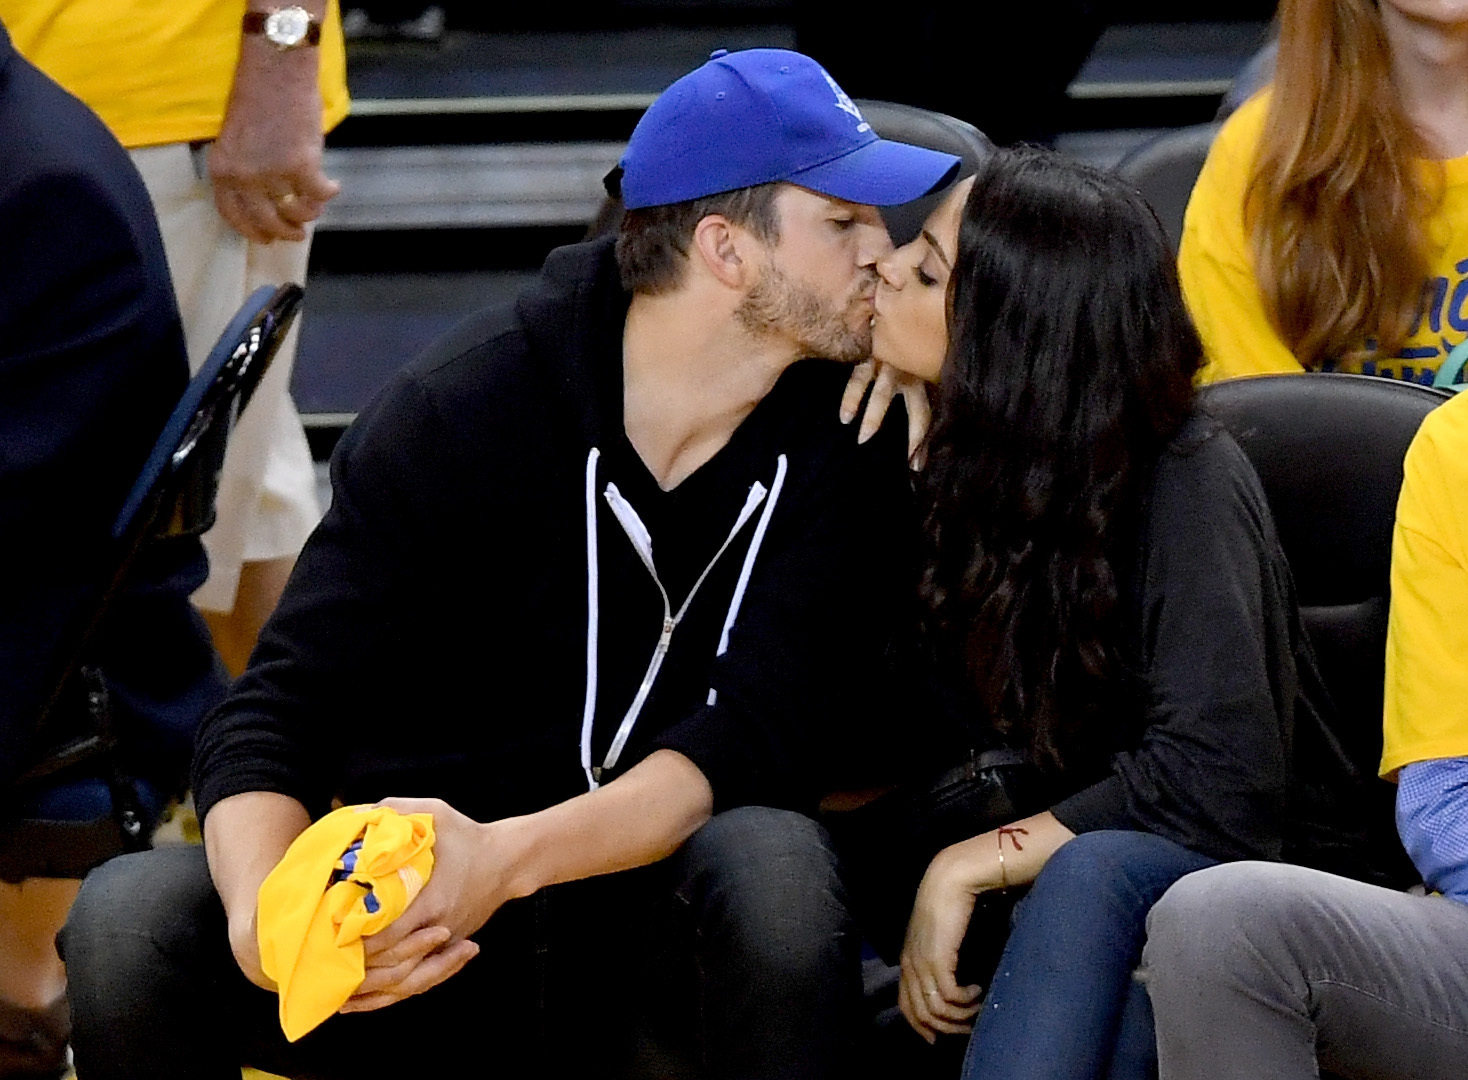 Ashton Kutcher, Mila Kunis hit Seattle for a comedy date